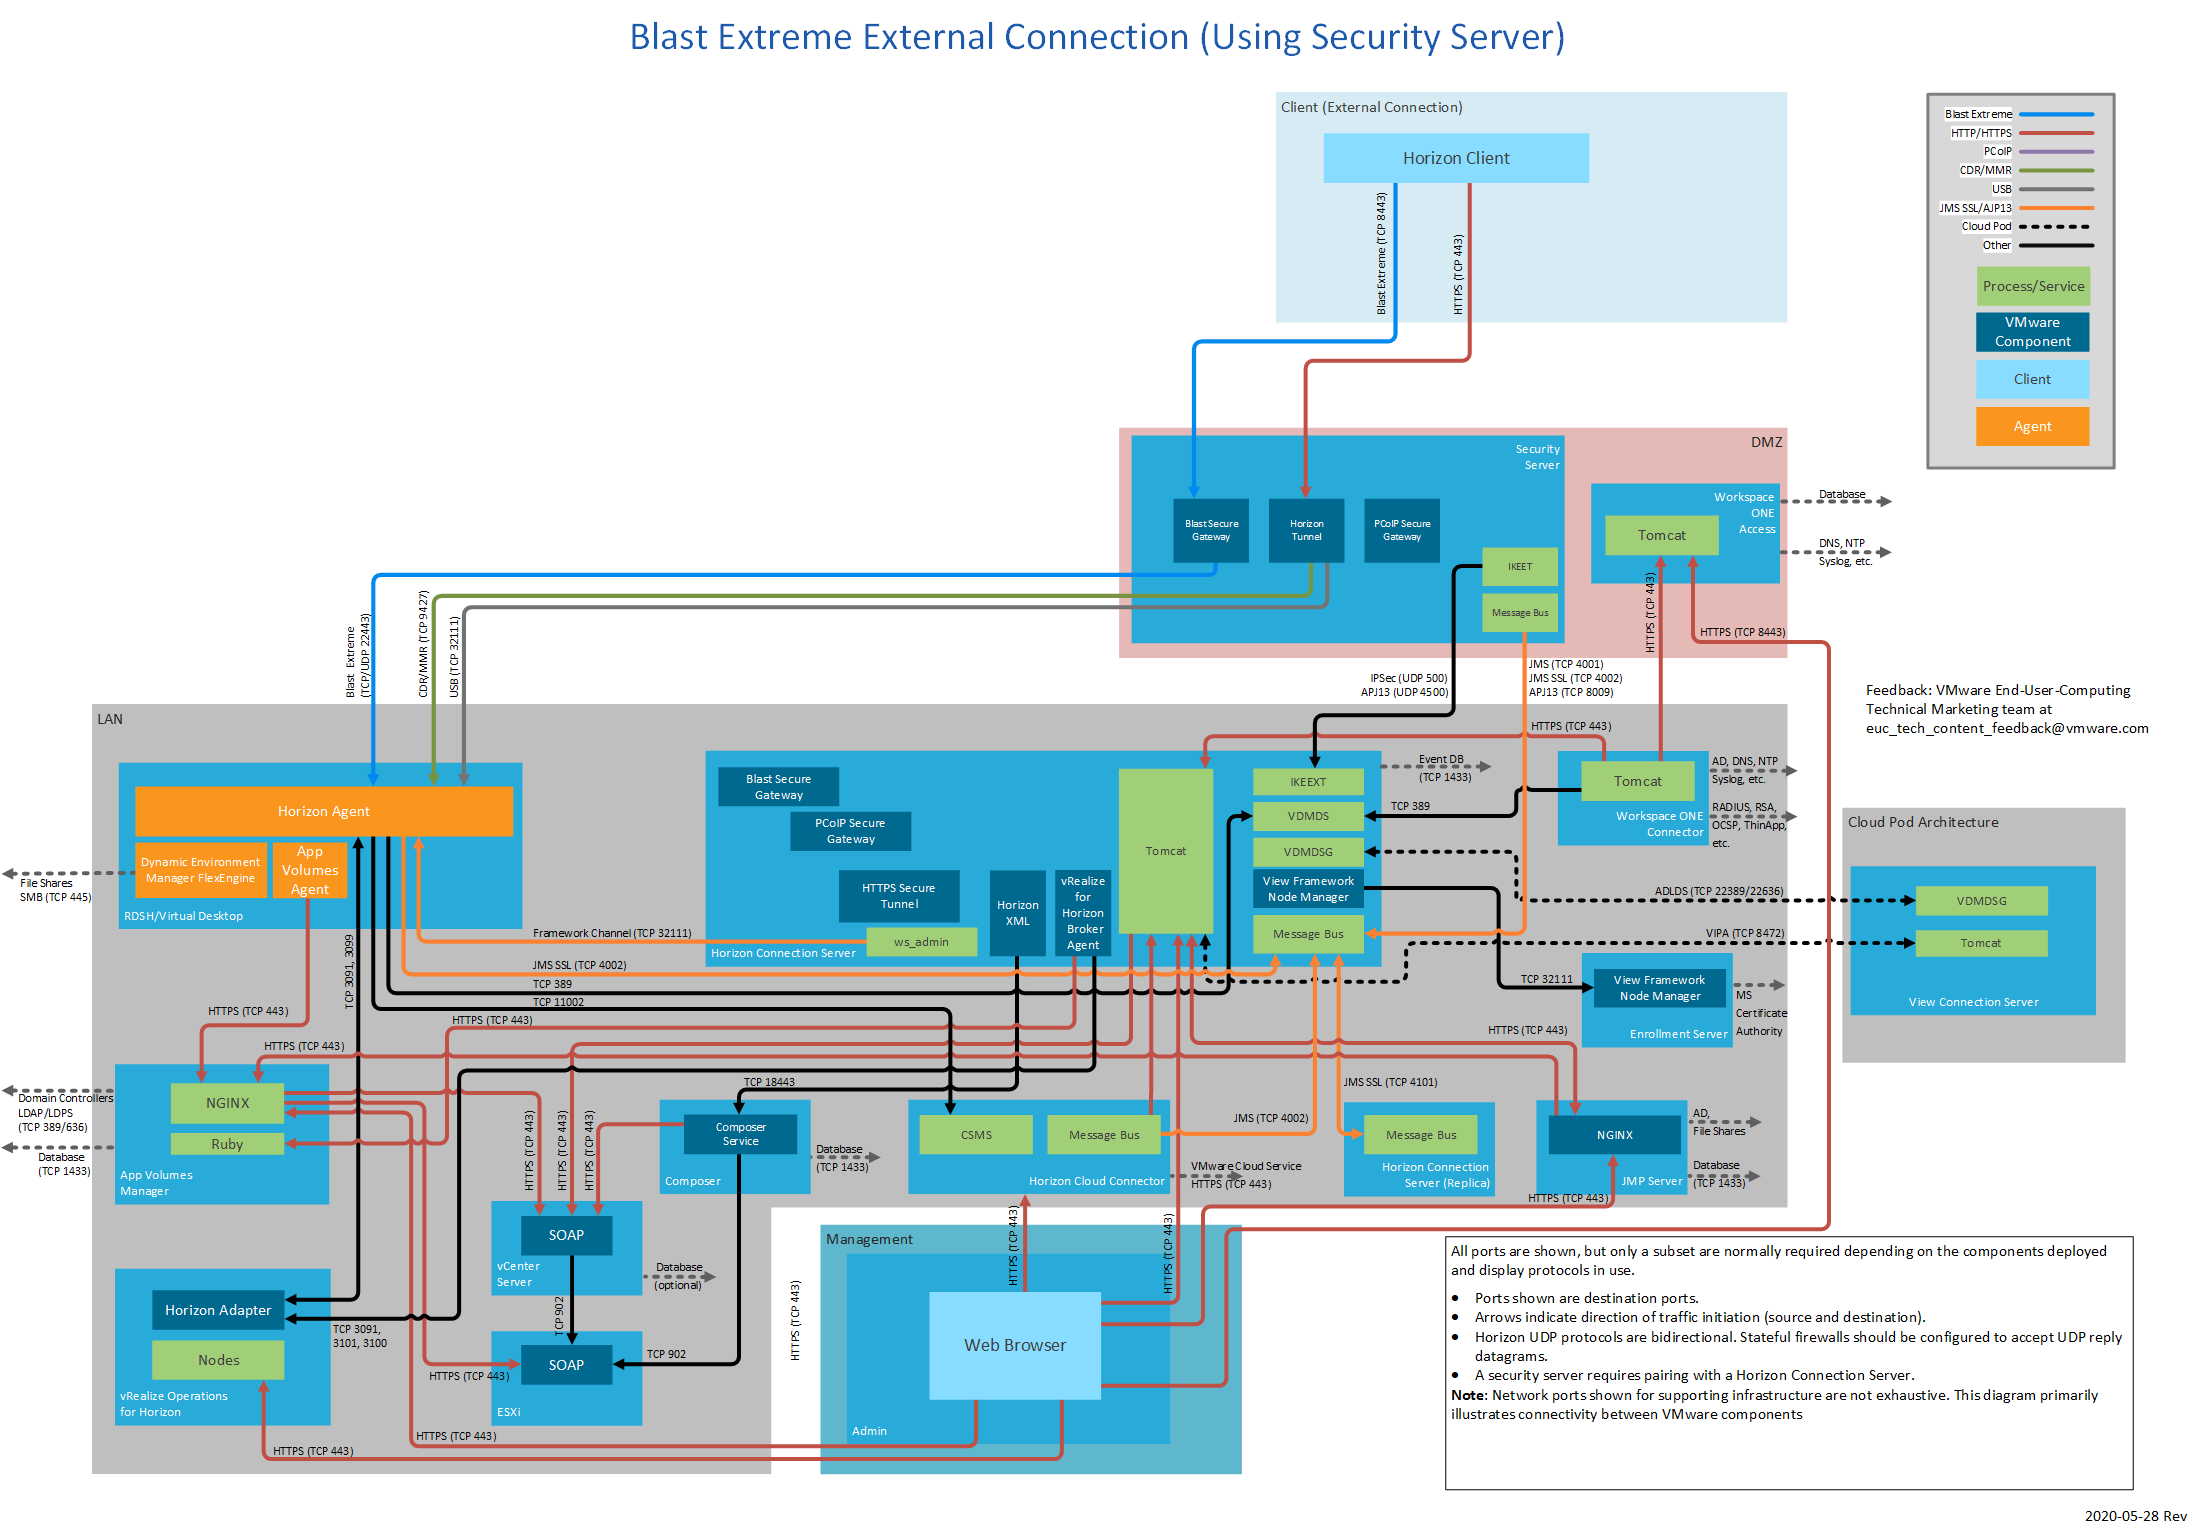 Review each network port for Blast extreme external connections using Security server.